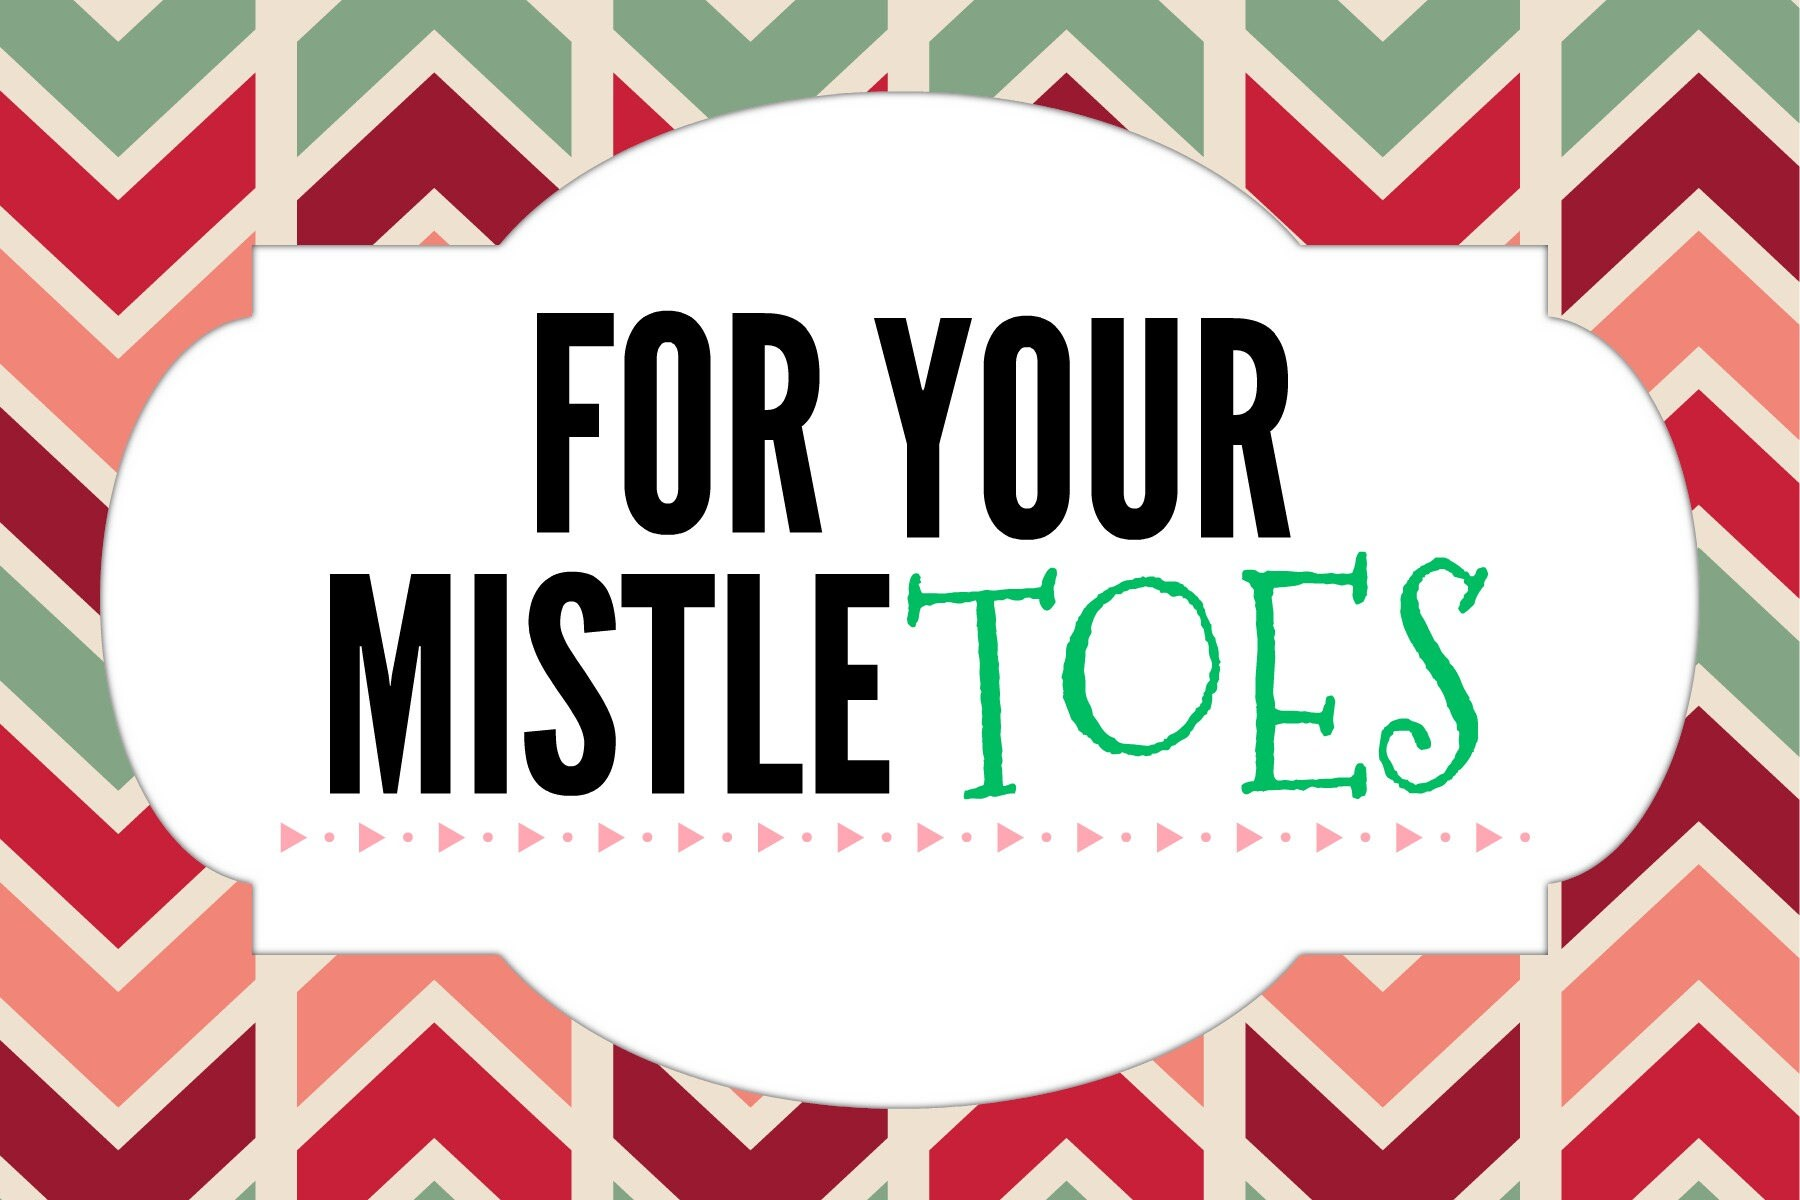 graphic relating to For Your Mistletoes Printable Tags known as For Your Mistle Ft Printable